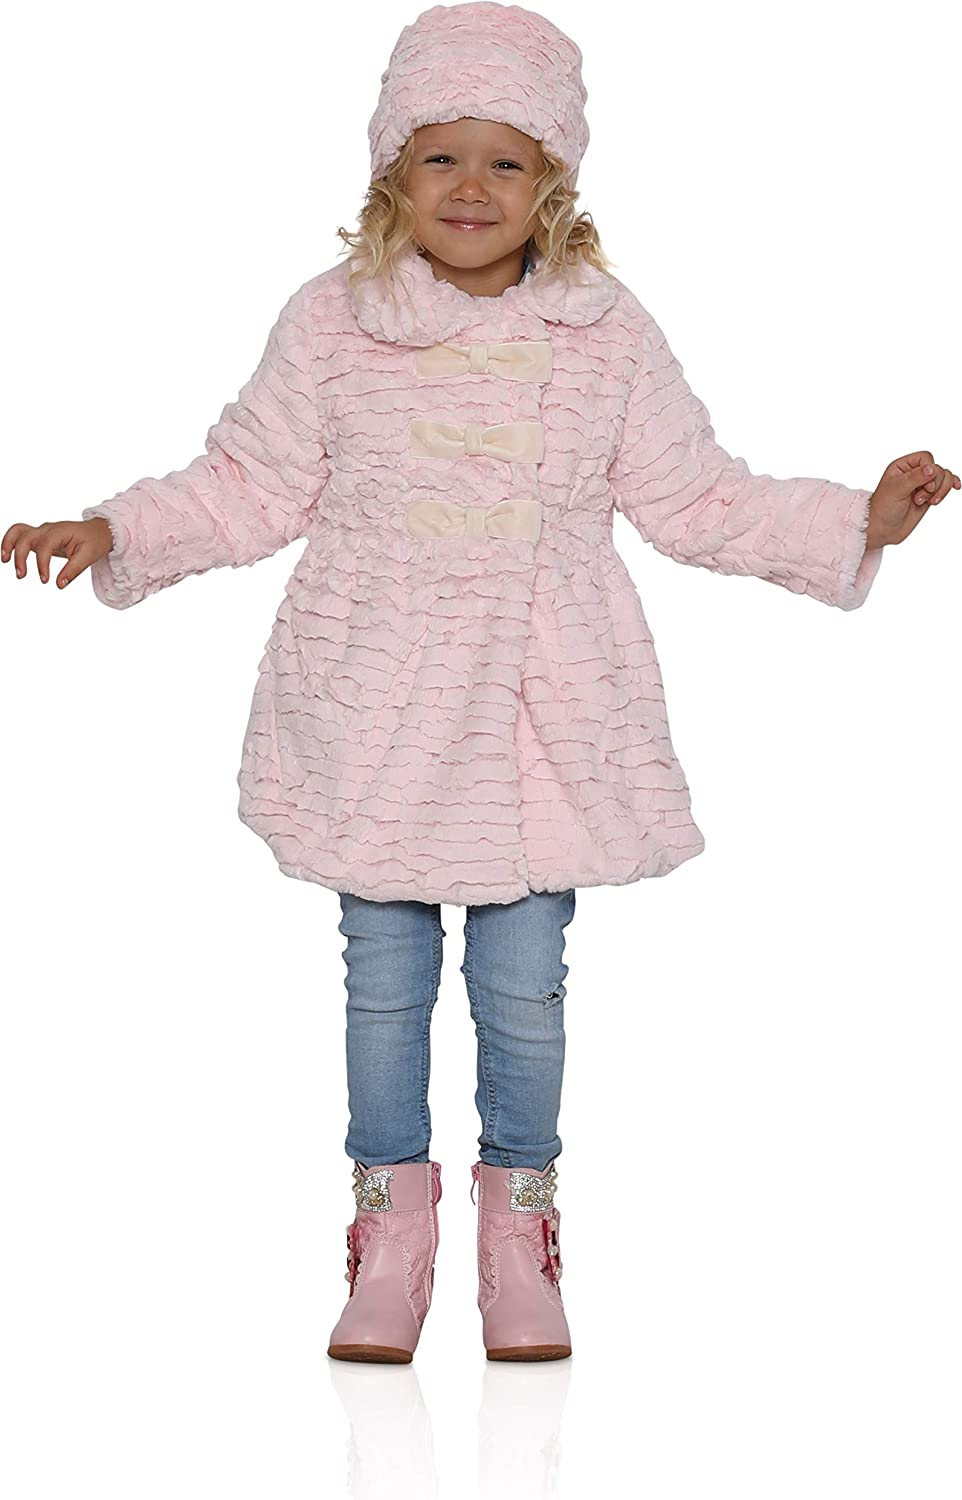 Widgeon Little Girls' 3 Bow Faux 67% OFF of fixed price Hat Import Coat Wav with Fur Textured